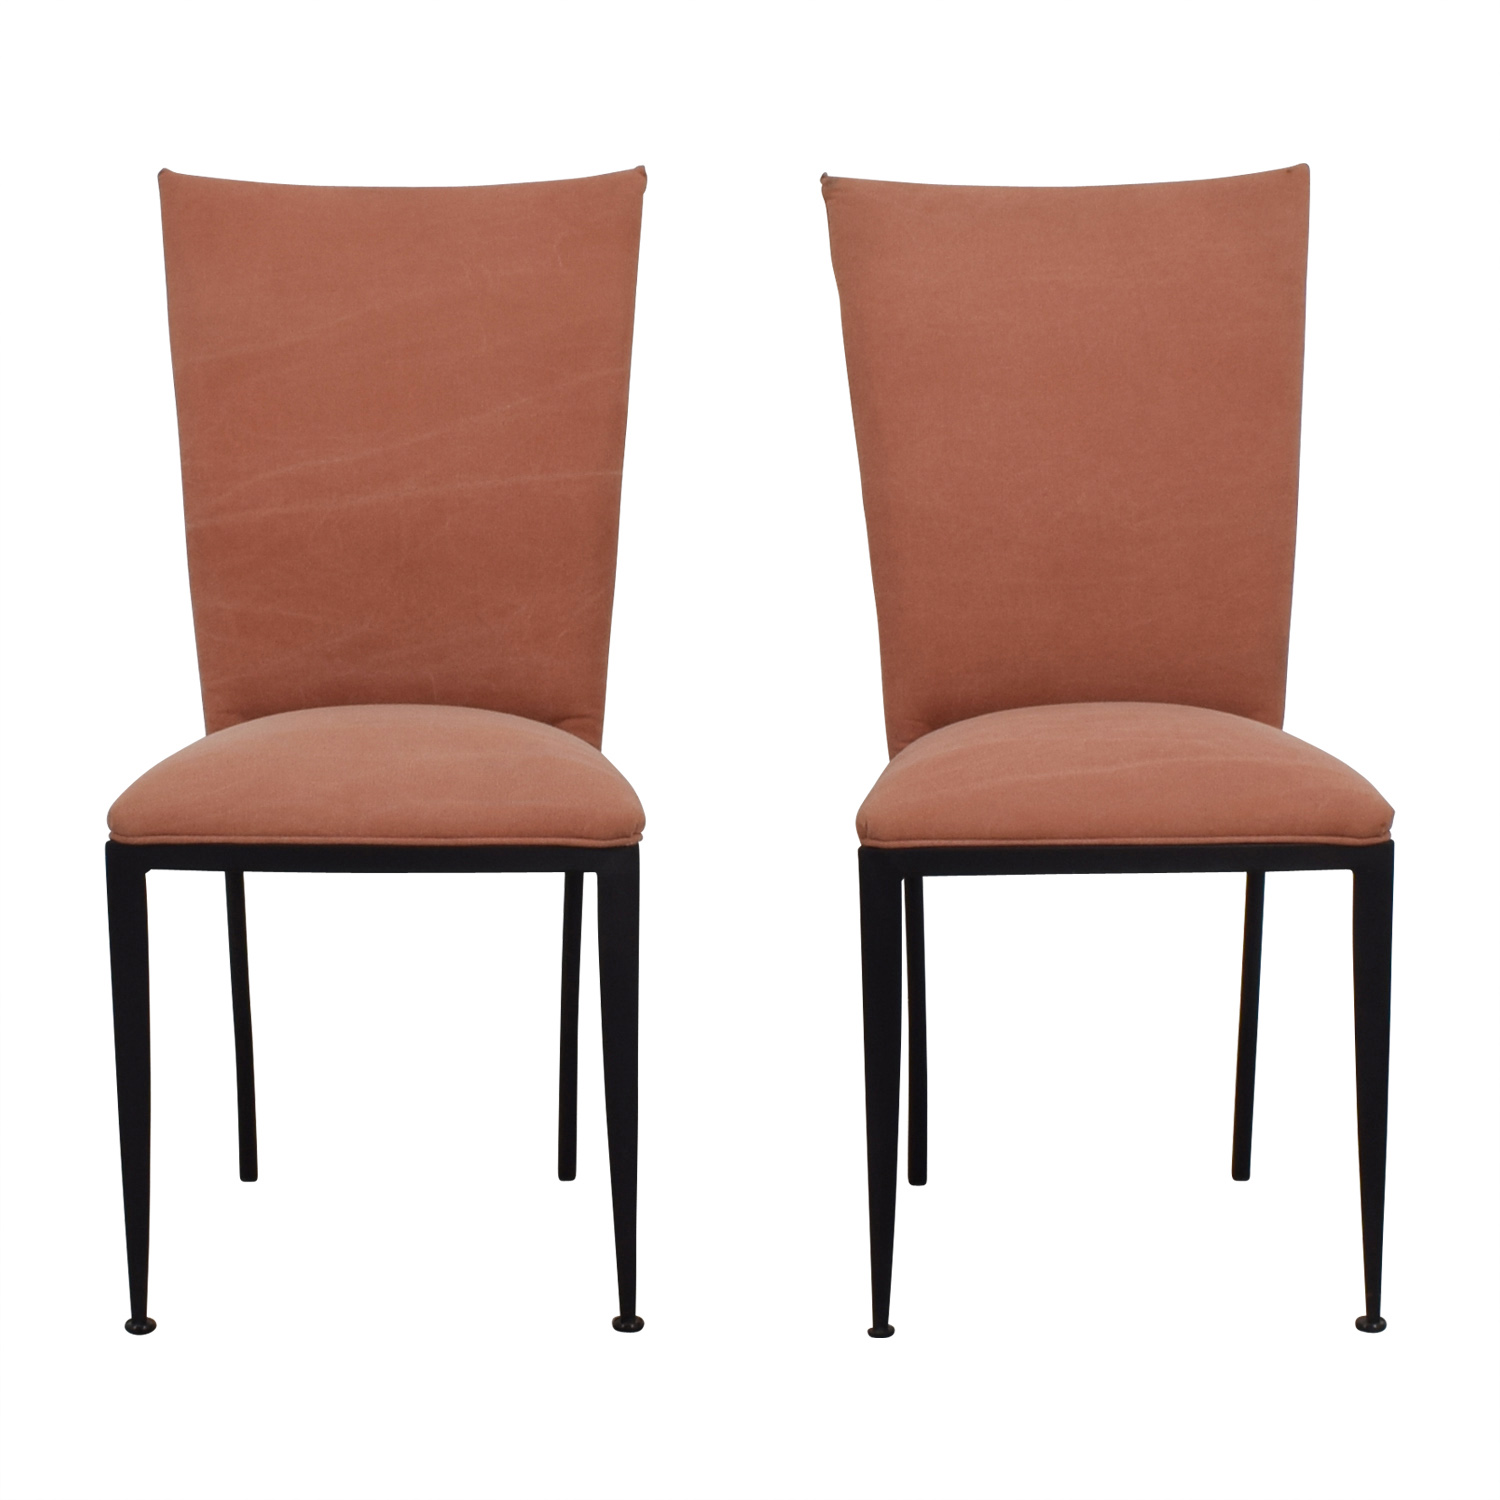 Pink Upholstered Chair Dining Chairs Used Dining Chairs For Sale